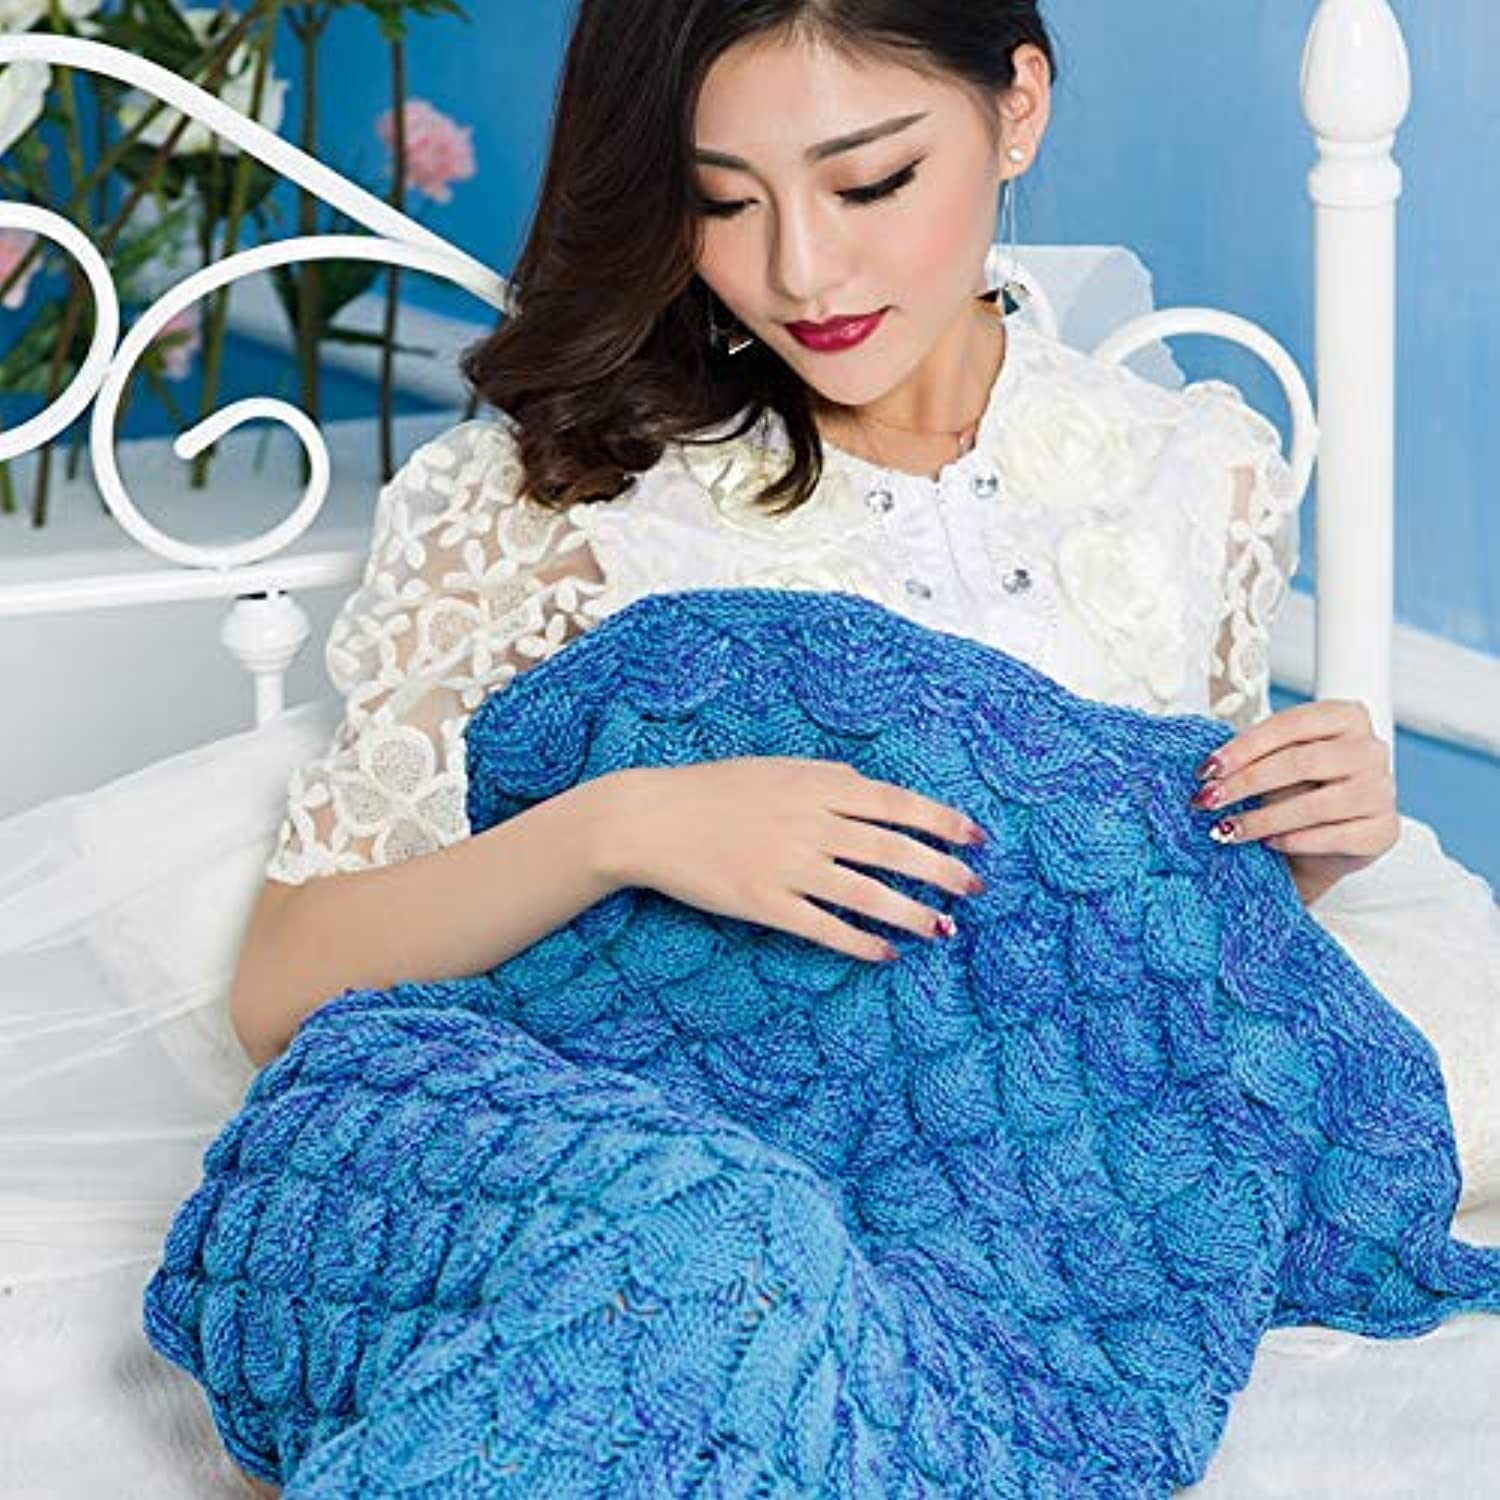 JINGB Home Mermaid Knitted Mermaid Tail, bluee, 180  90CM (71  35.4 inch) (color   The bluee, Size   140  70CM)